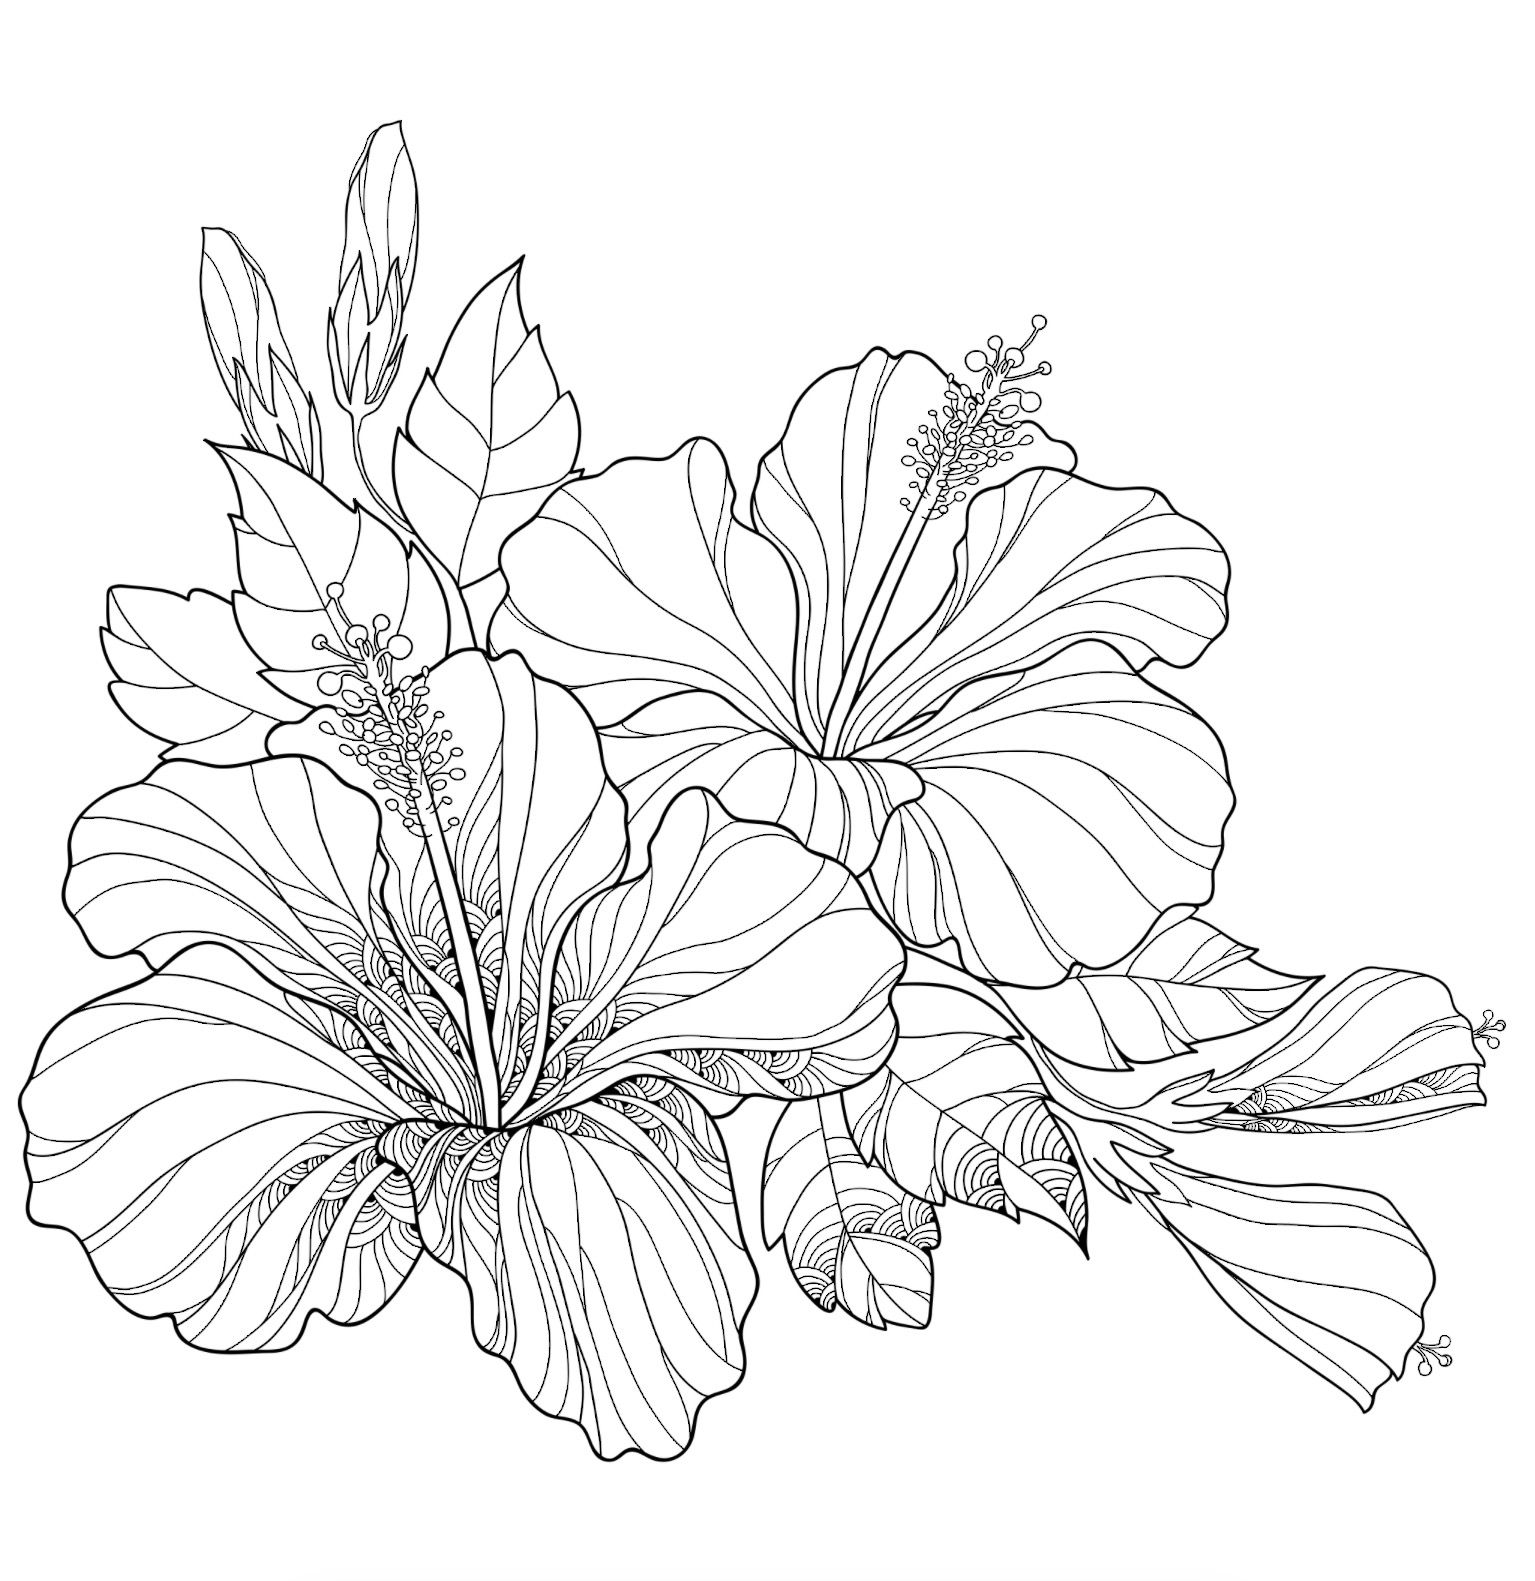 Pin By Althea On Flora With Images Flower Line Drawings